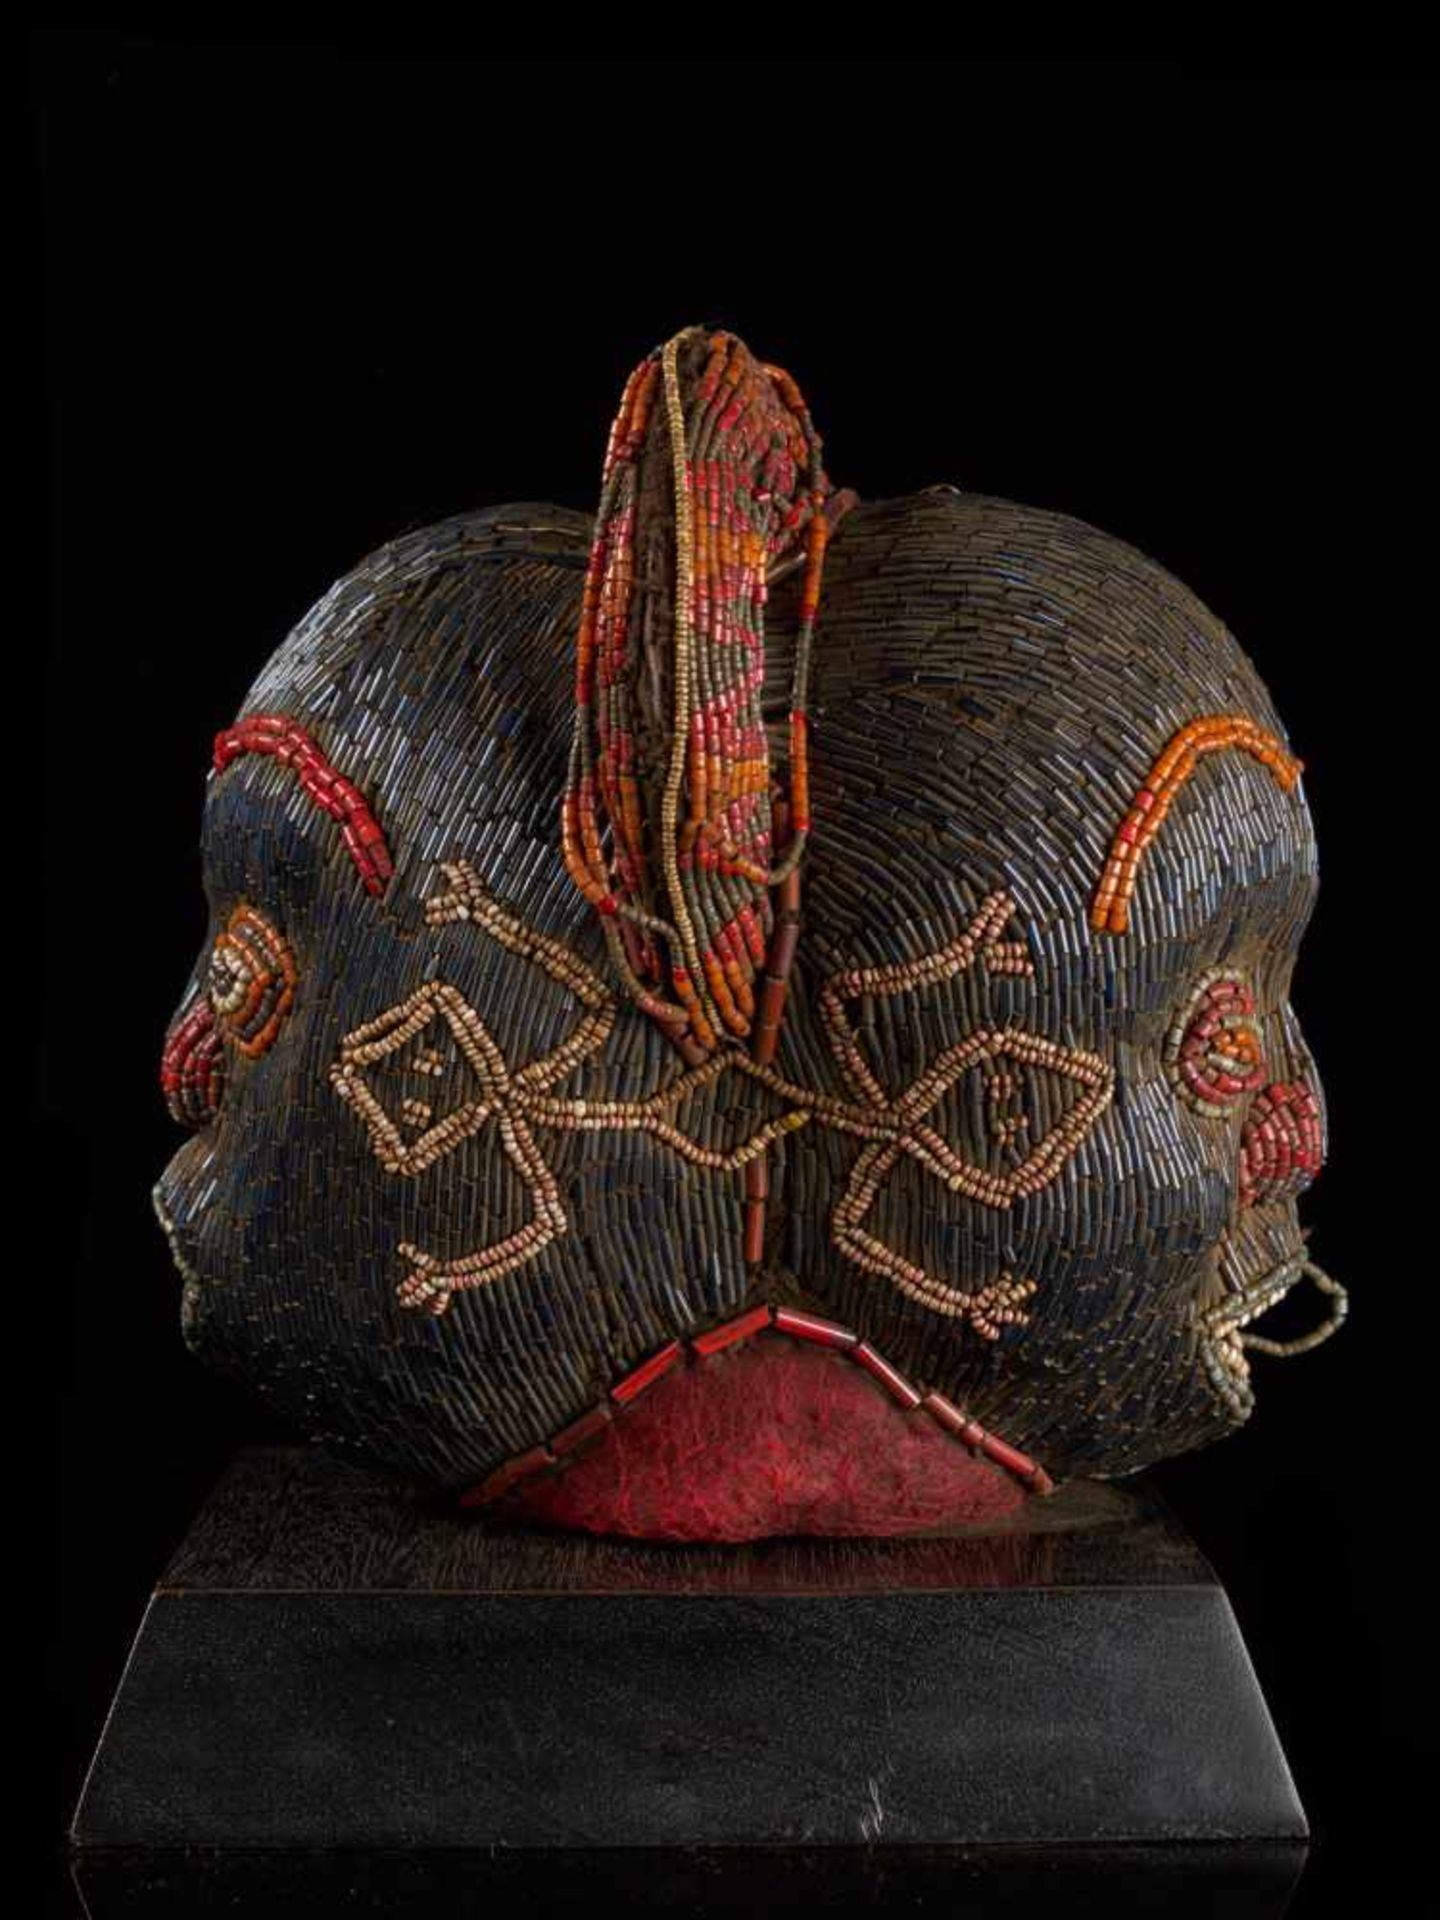 Beaded Janus Head Sculpture With Headdress - Tribal ArtThis beautiful two-faced head sculpture is - Bild 2 aus 6